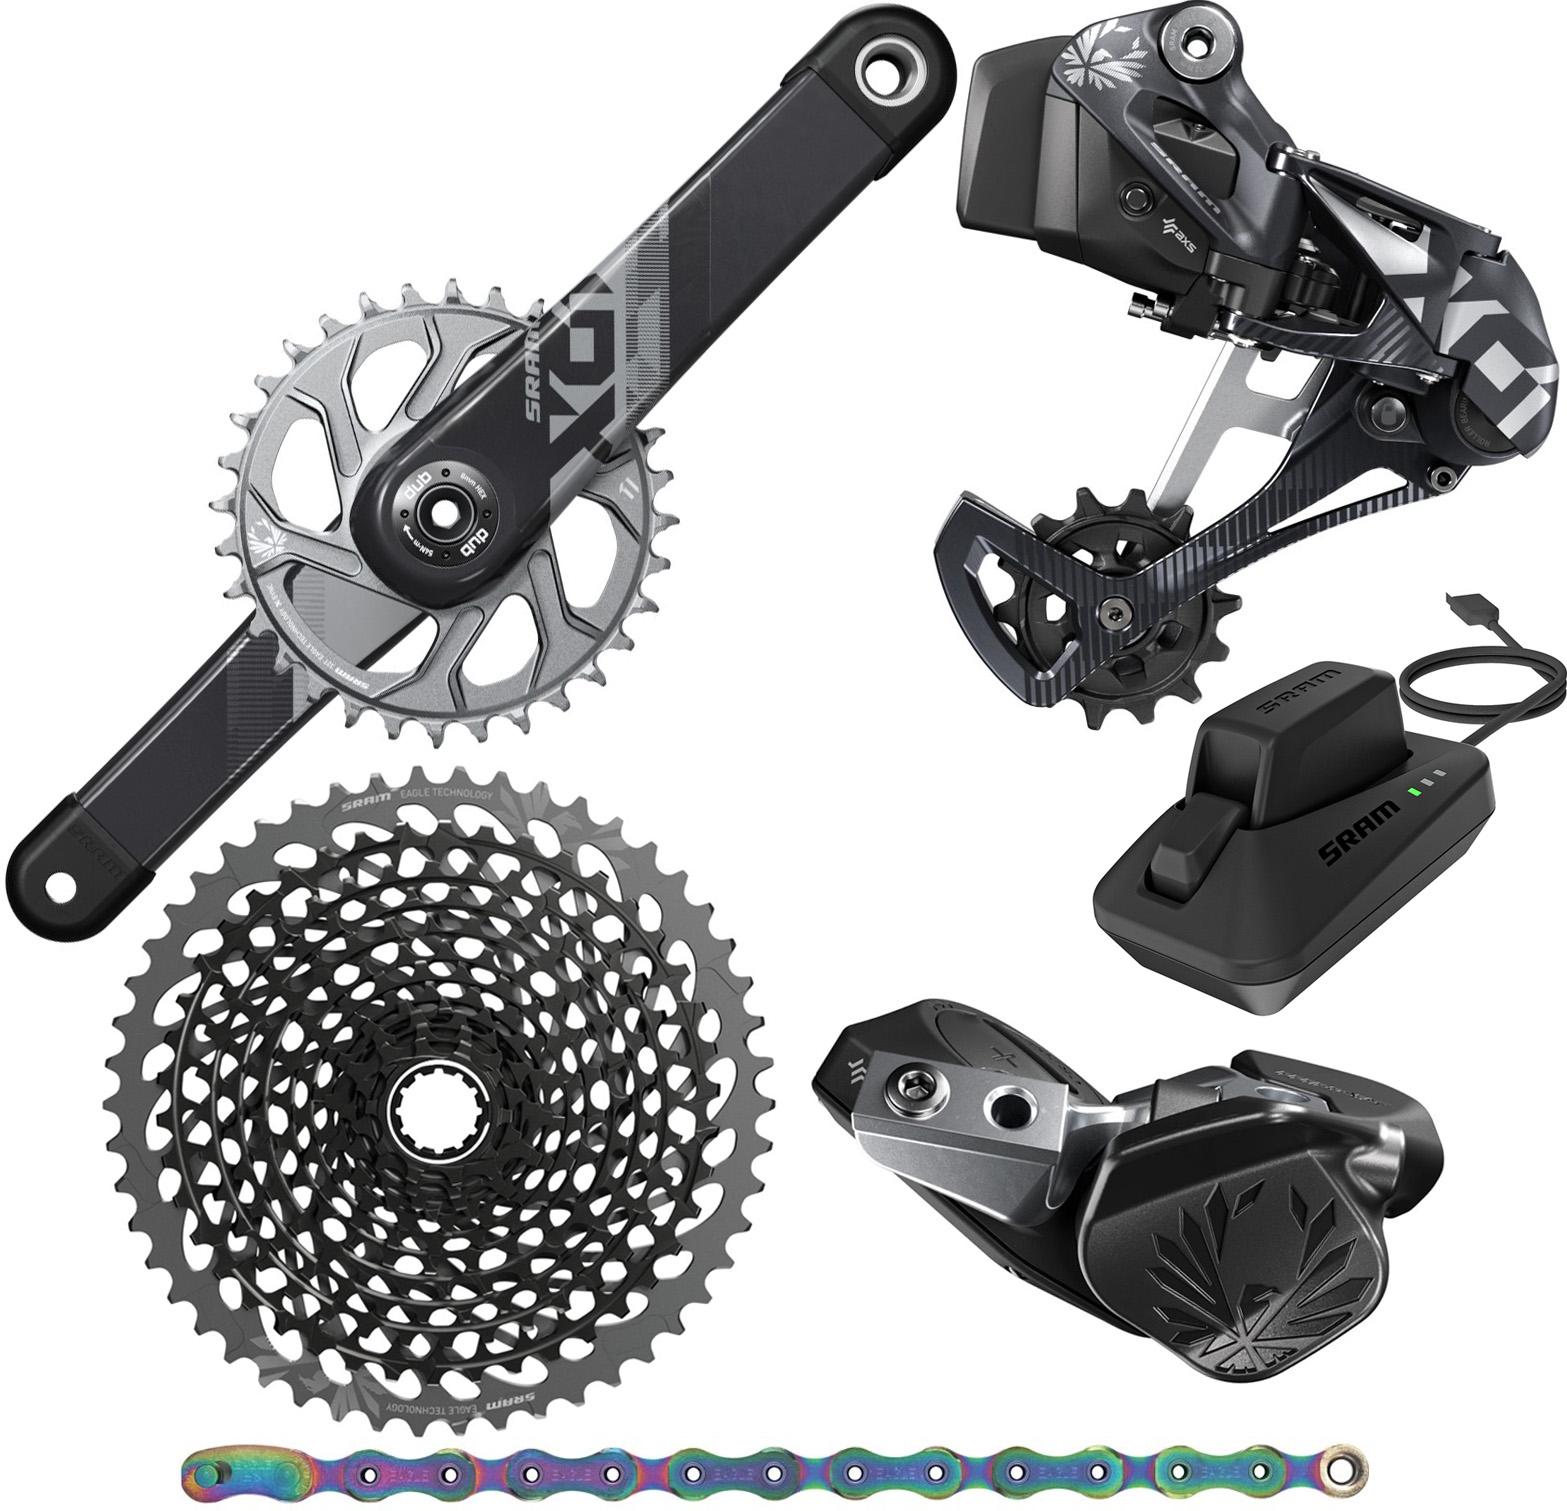 sram-x01-eagle-axs-dub-12sp-groupset-groupsets-black-not-set-00-7918-080-000-1.jpg